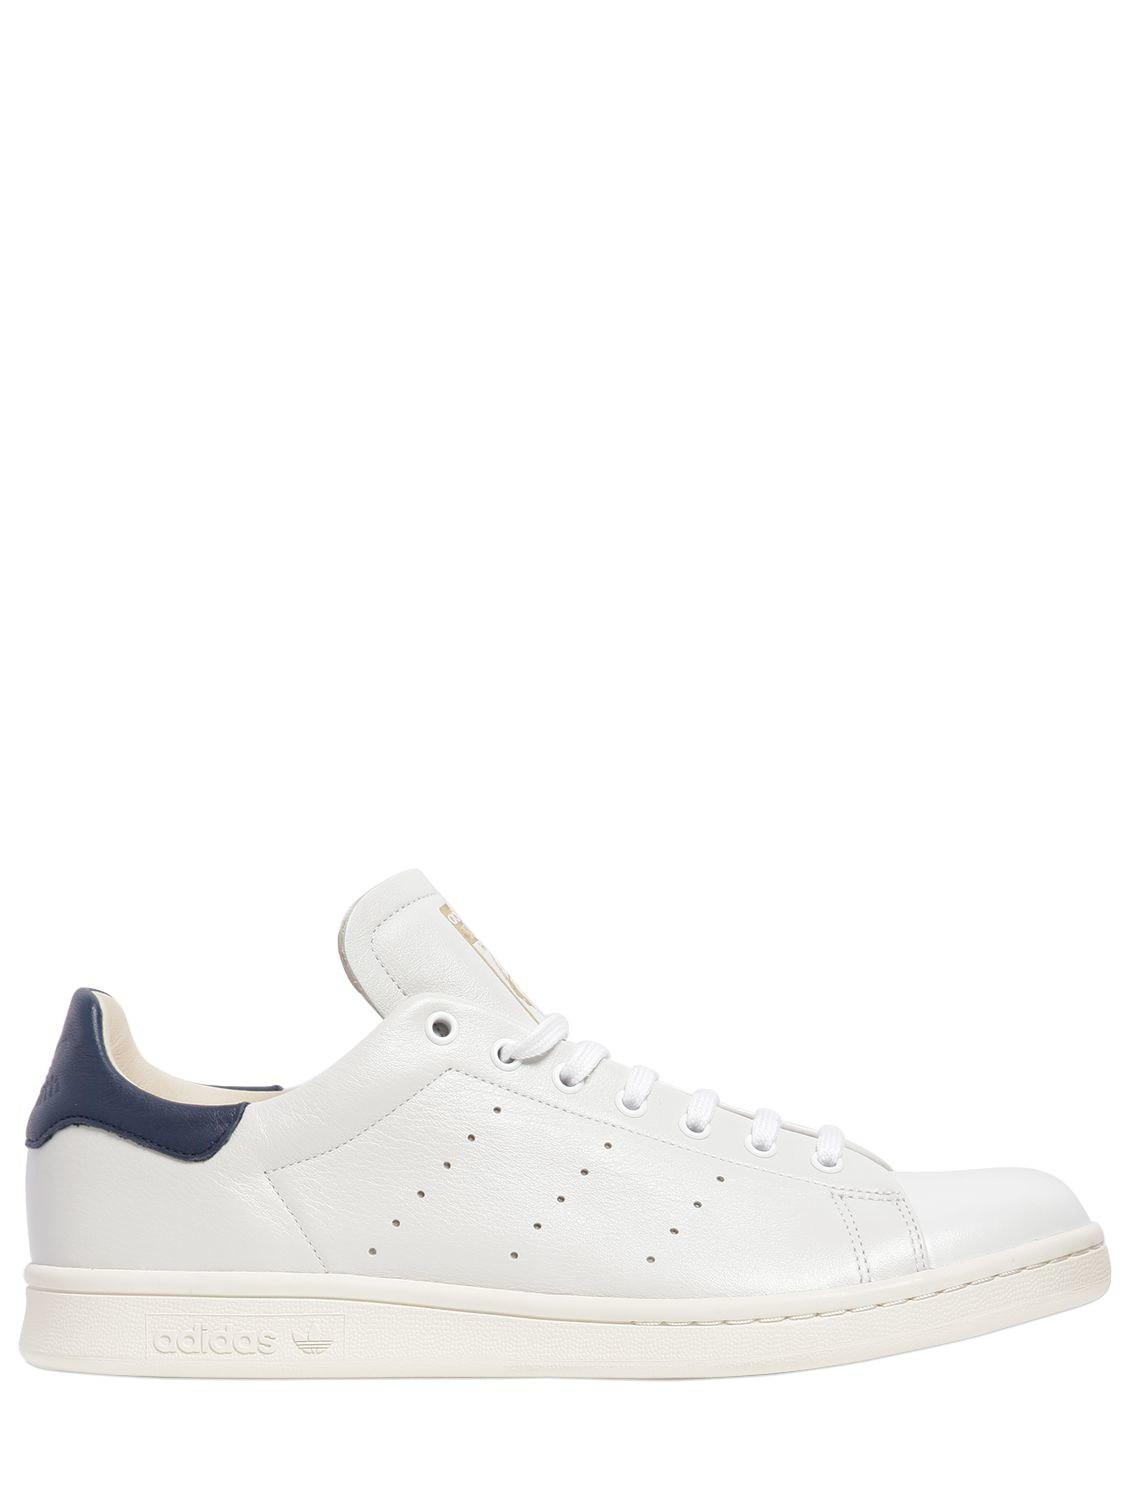 Light gray Stan Smith Recon sneakers adidas xJCUE3J3i